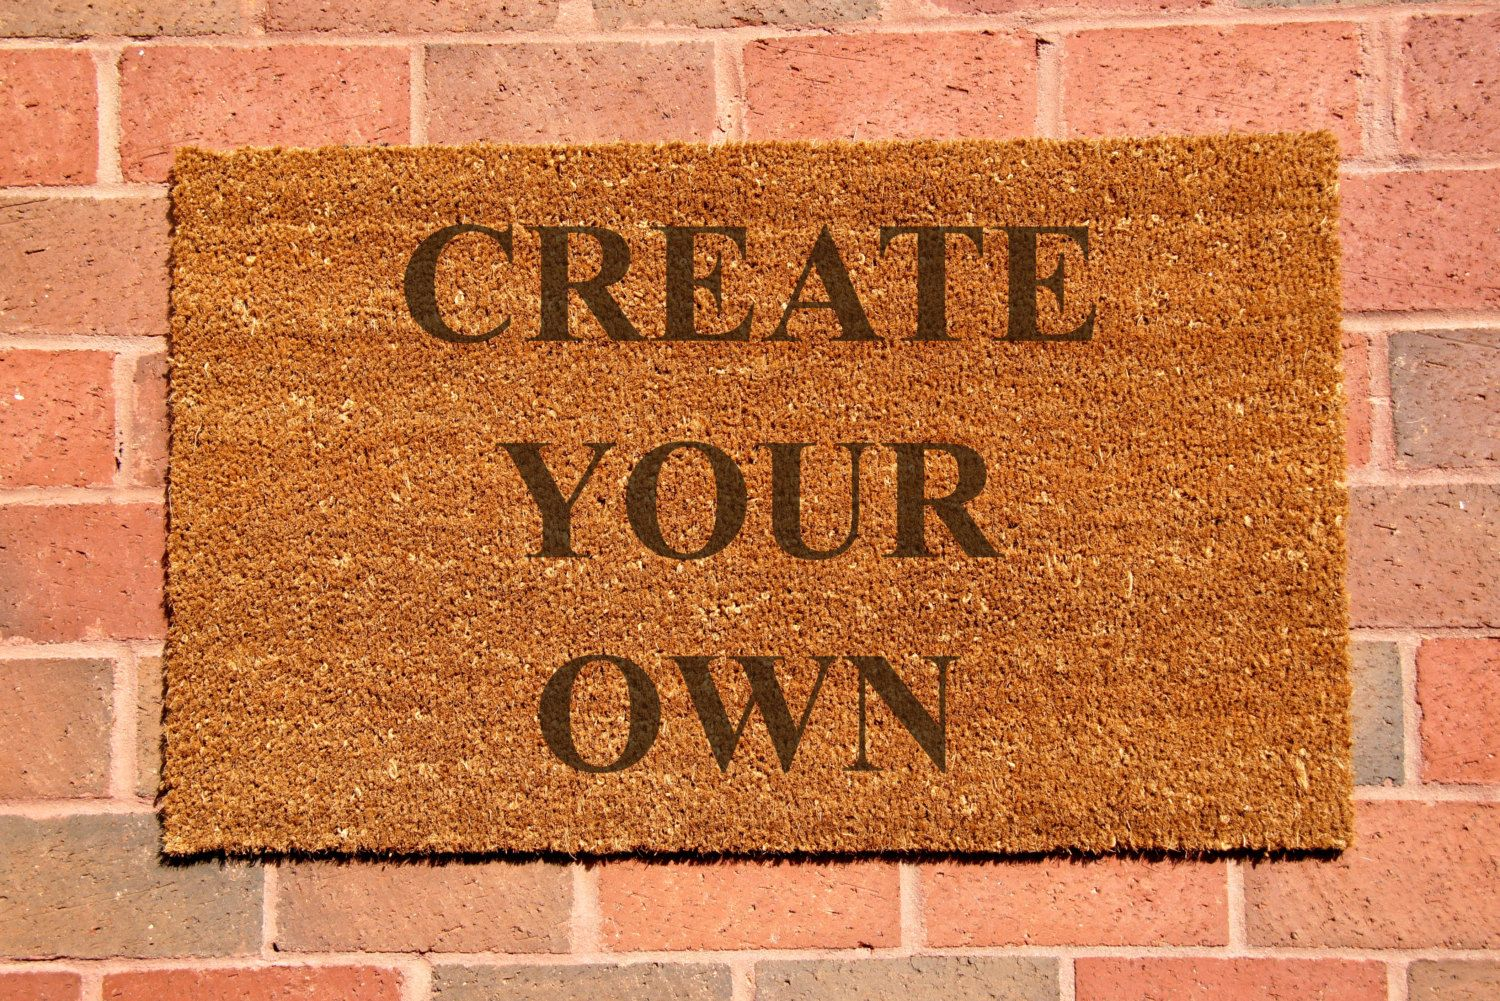 Custom laser engraved door mat personalized welcome mat welcome mat natural coco fiber coir mat custom door mat create your own 34 99 usd by claybyrnemat